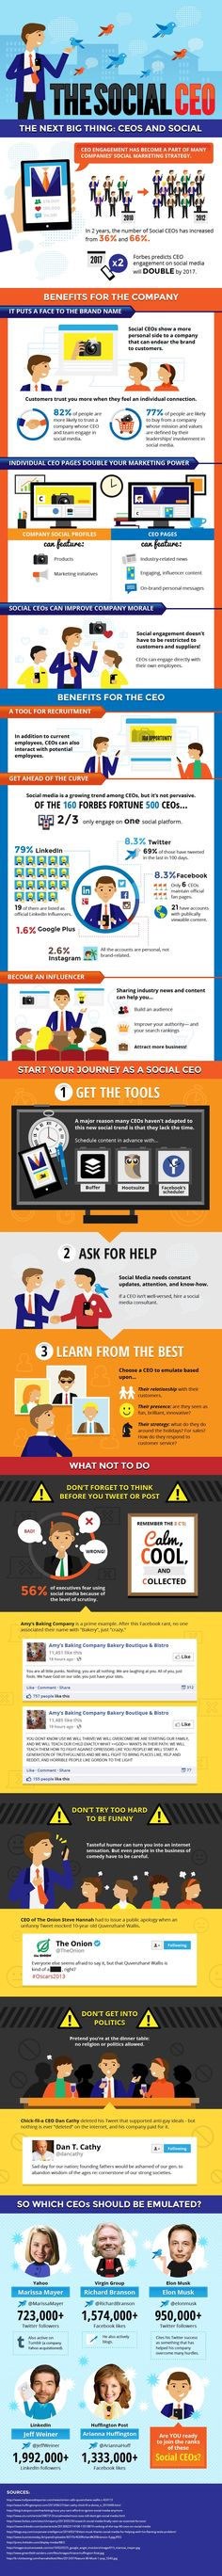 How to be a Social #CEO [INFOGRAPHIC]